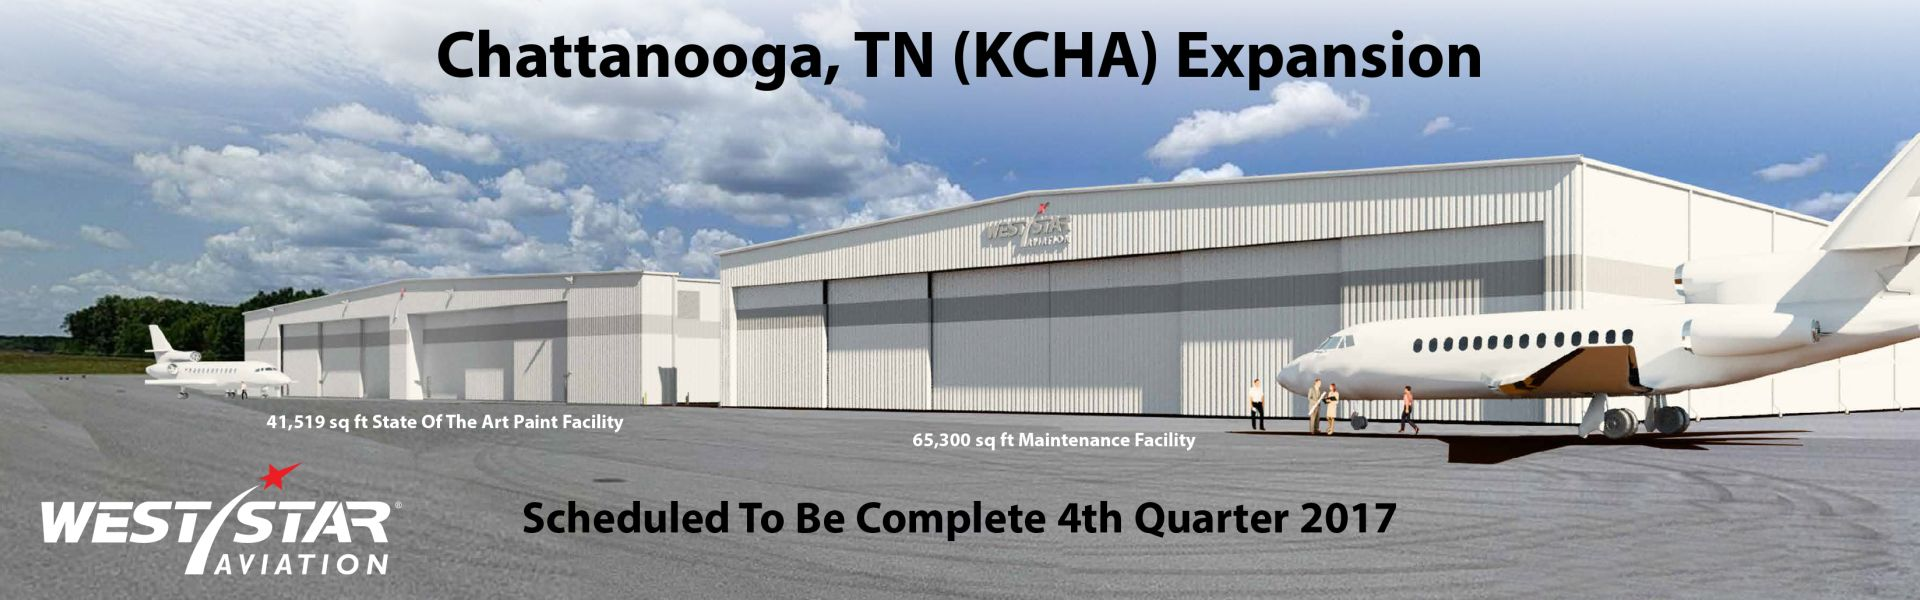 Chattanooga Company Expands, Adding Jobs Near Airport